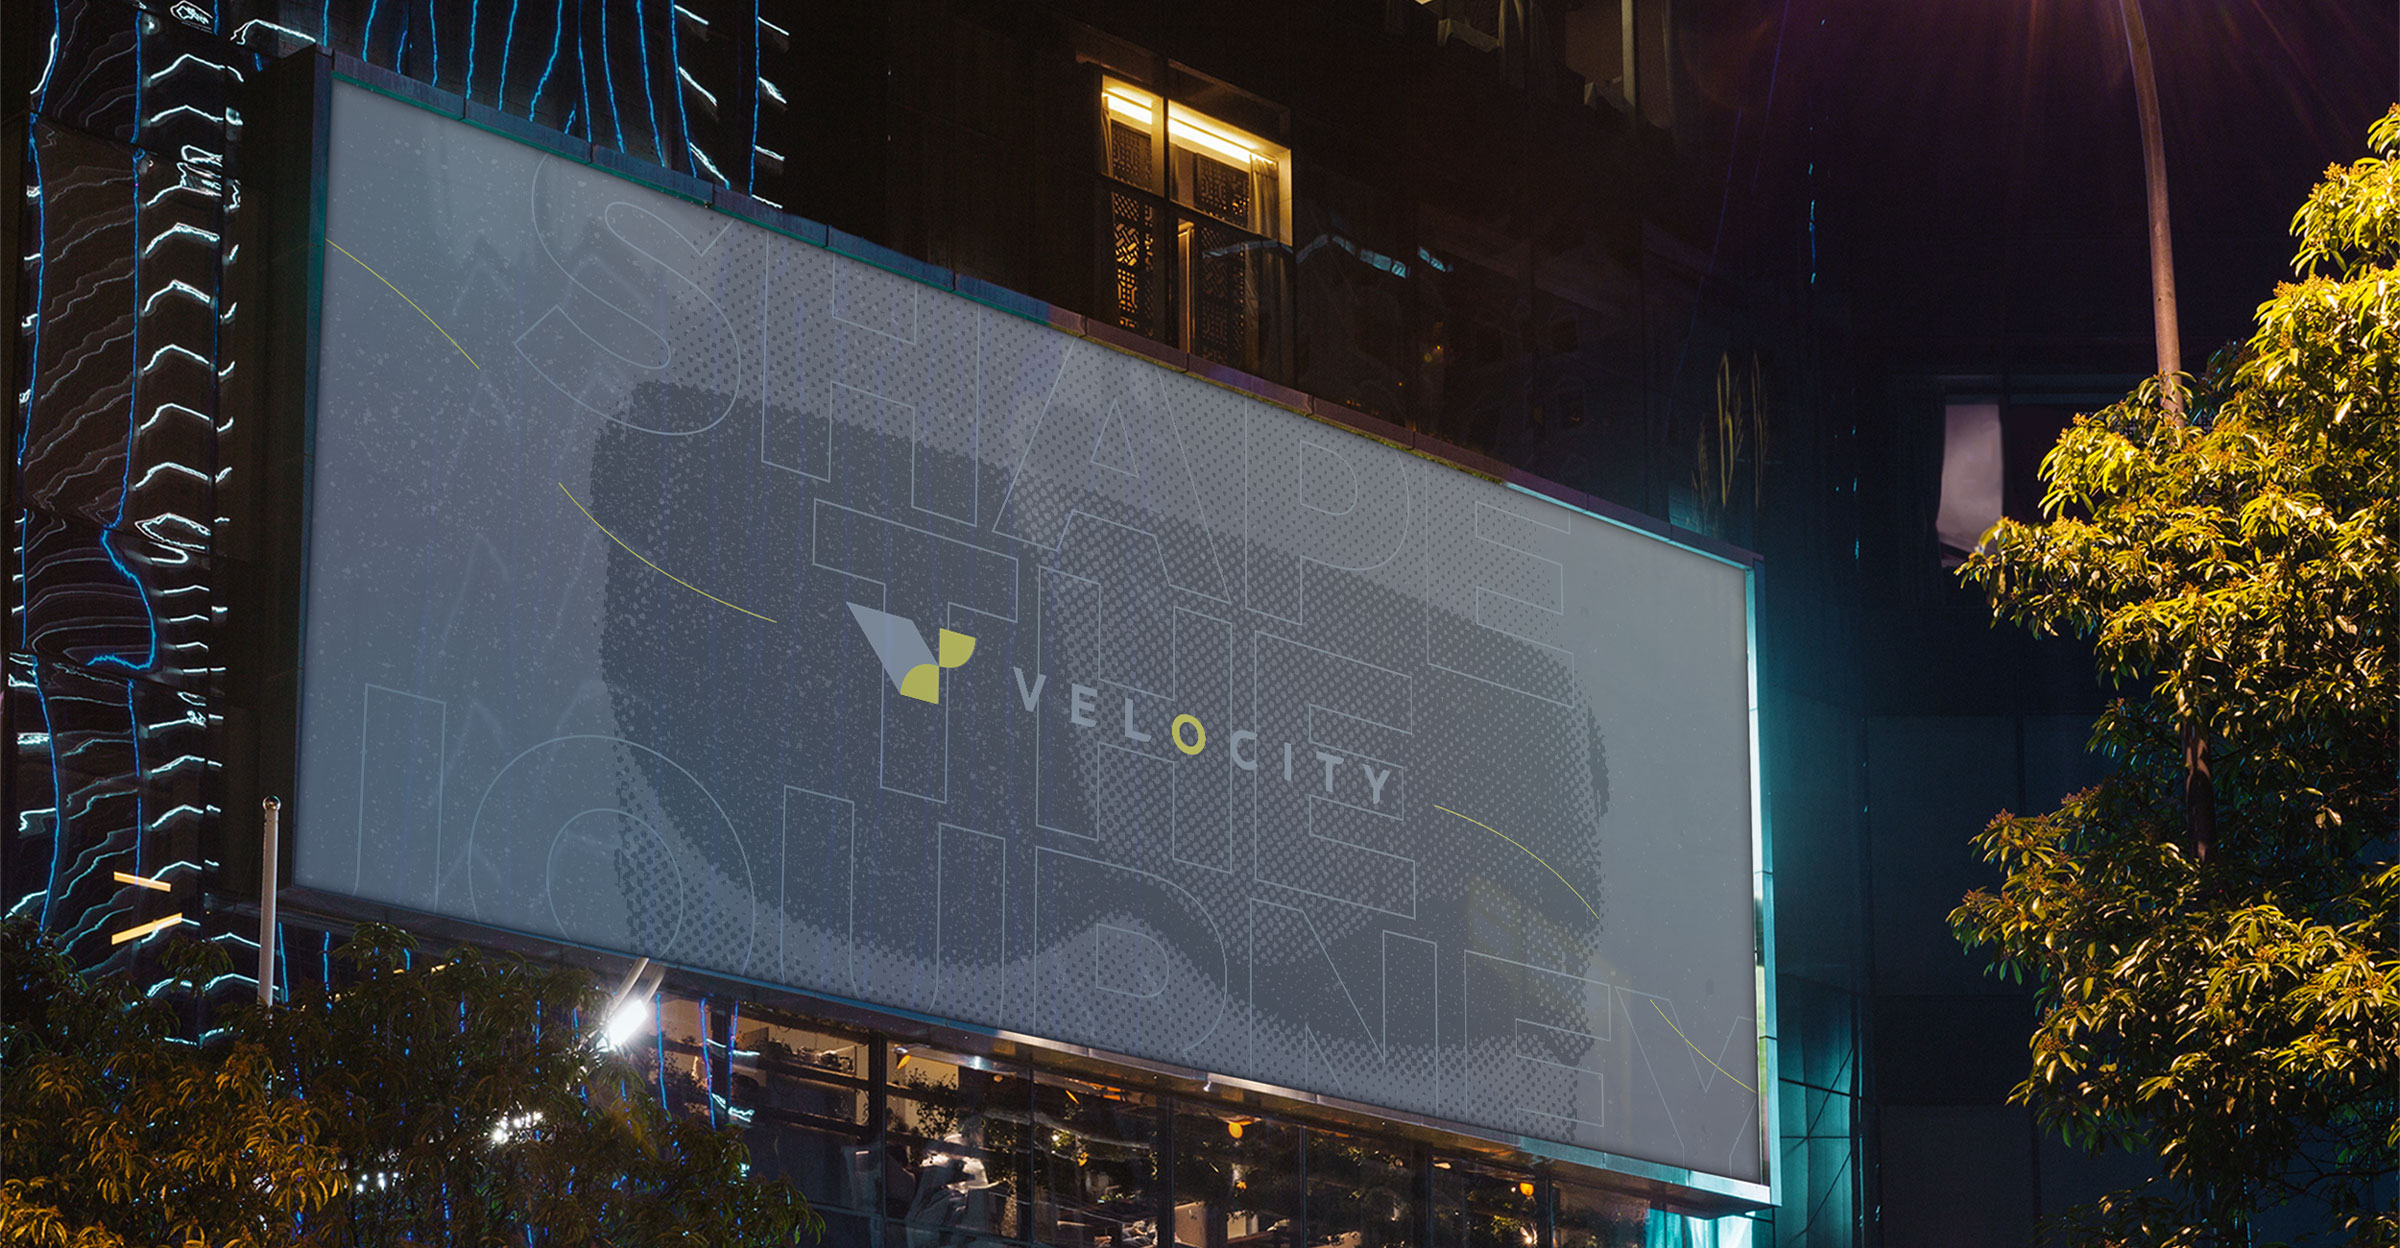 Velocity_Billboard_Blue_01